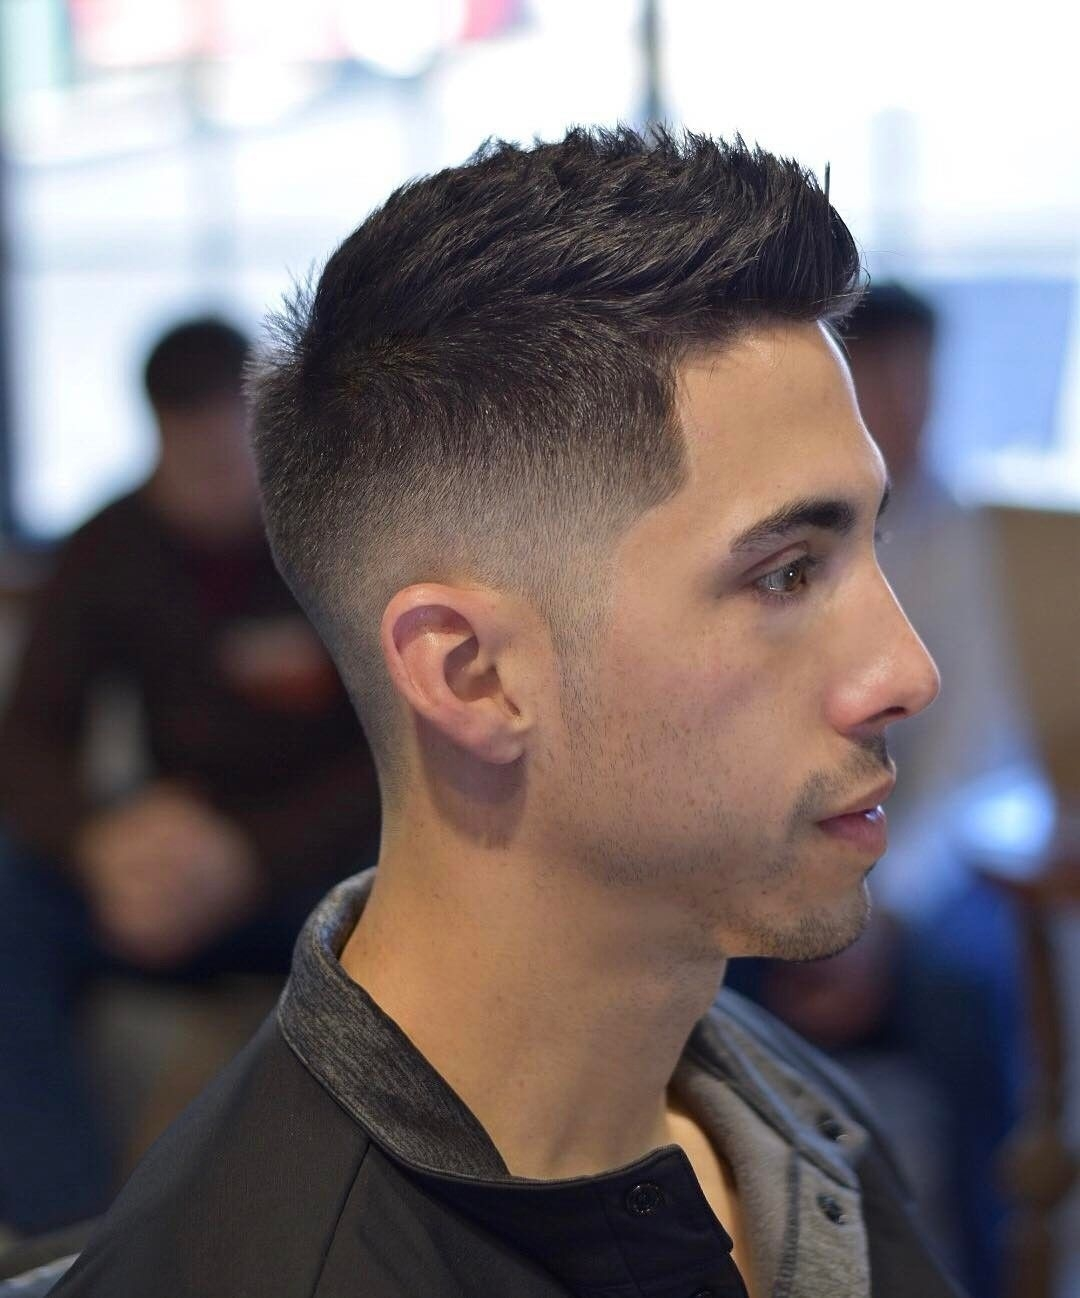 10+ Best Military Haircut Styles For Guys Tags: Military Haircut throughout Army Haircut Style In India